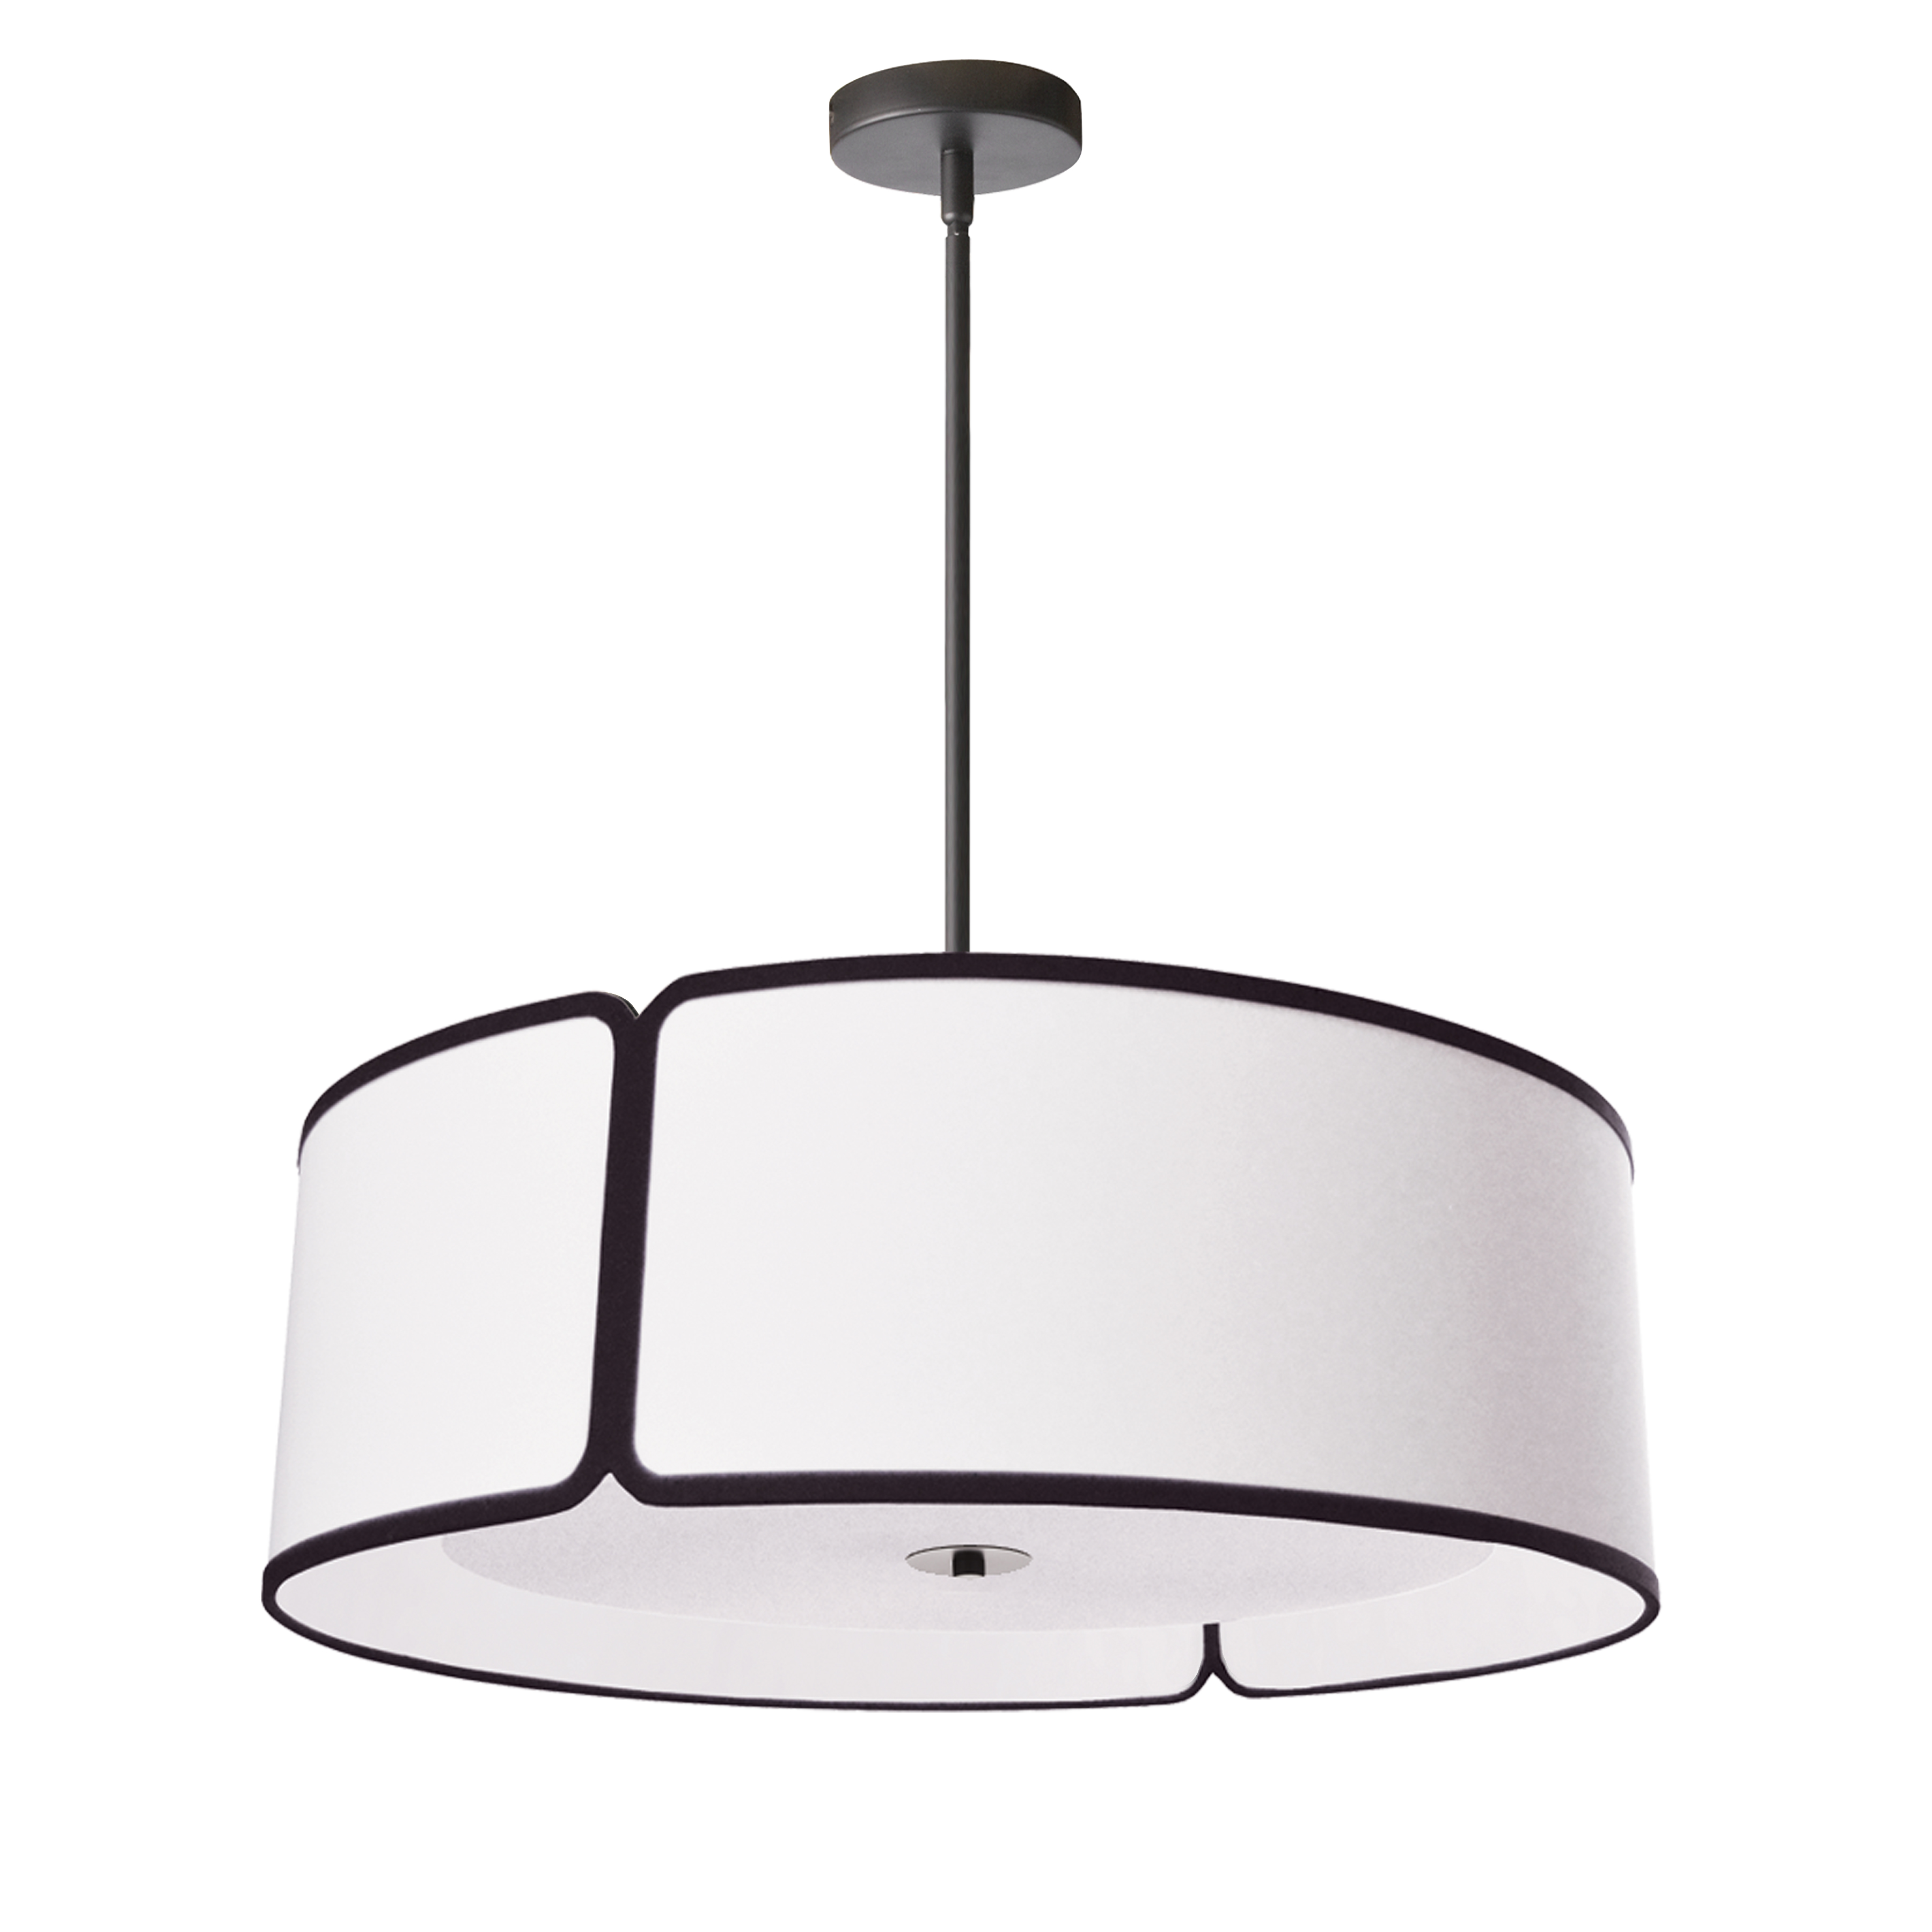 1 Light Trapezoid Pendant Black White Shade with 790 Diffuser